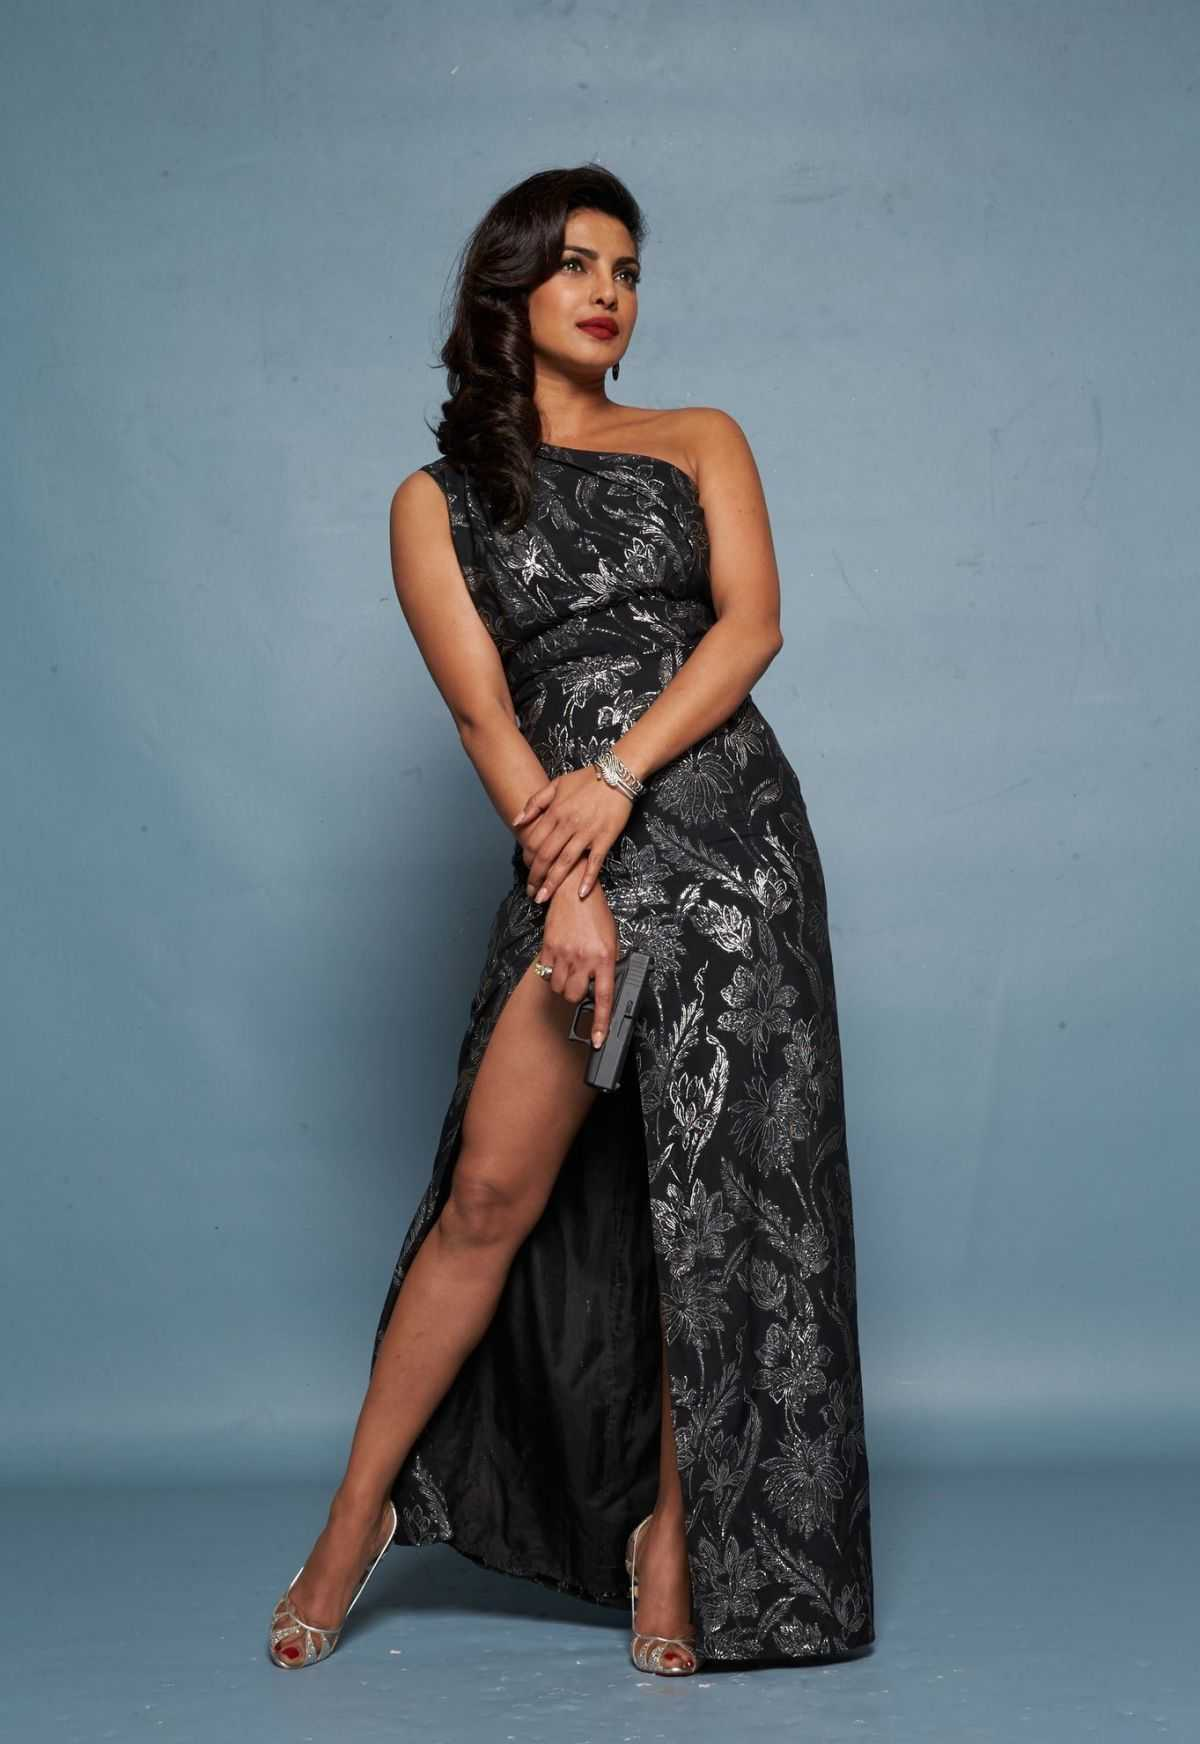 Priyanka Chopra feet awesome pics